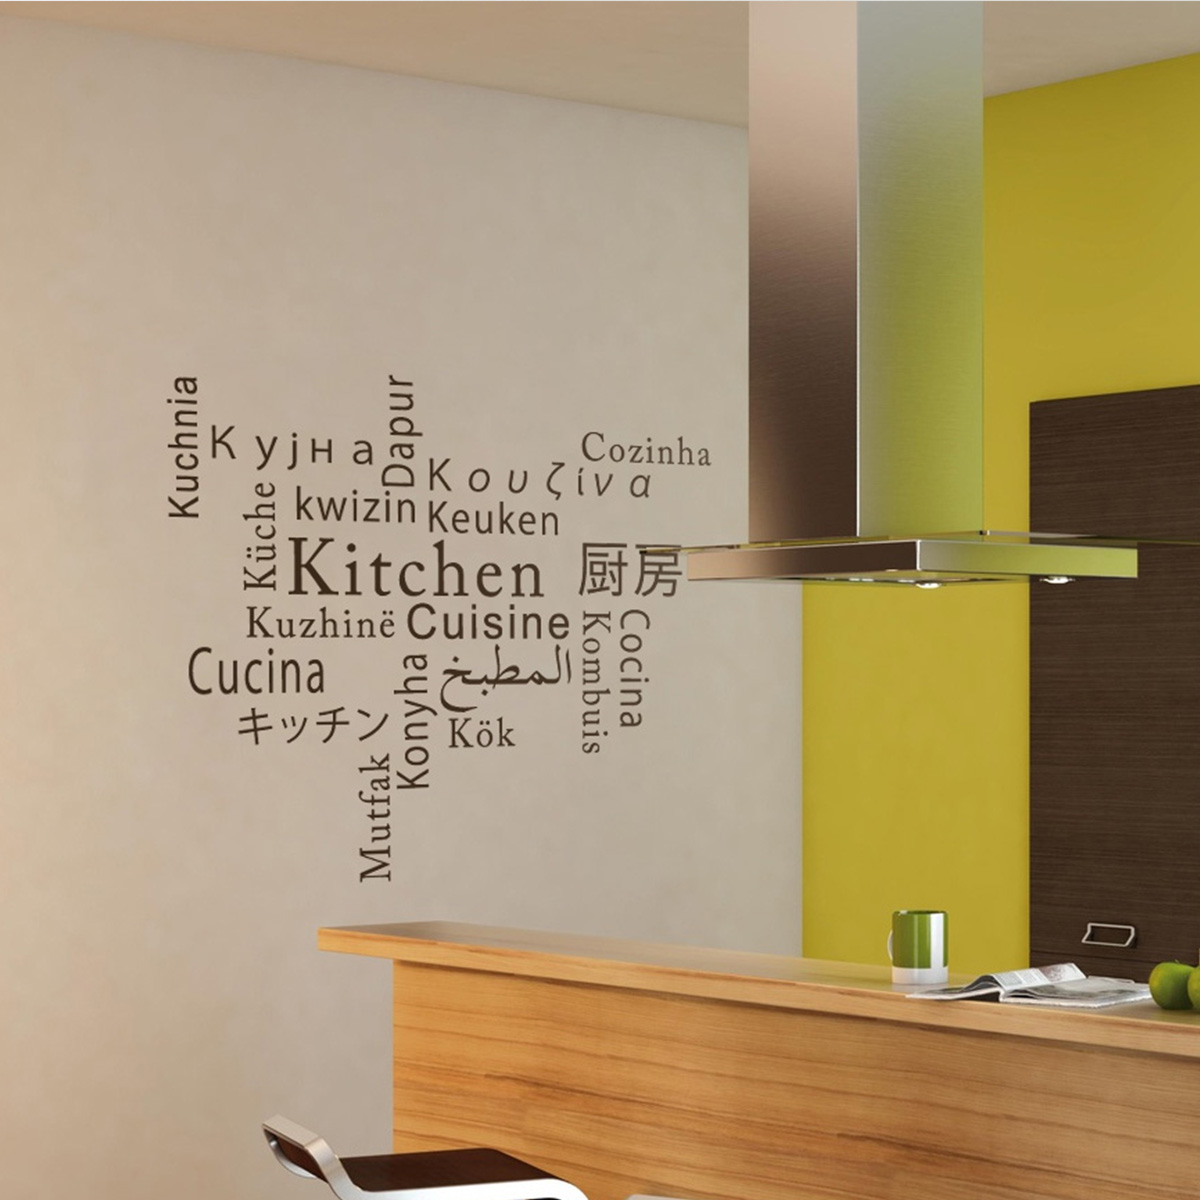 sticker cuisine multi langue stickers muraux pour la cuisine ambiance. Black Bedroom Furniture Sets. Home Design Ideas